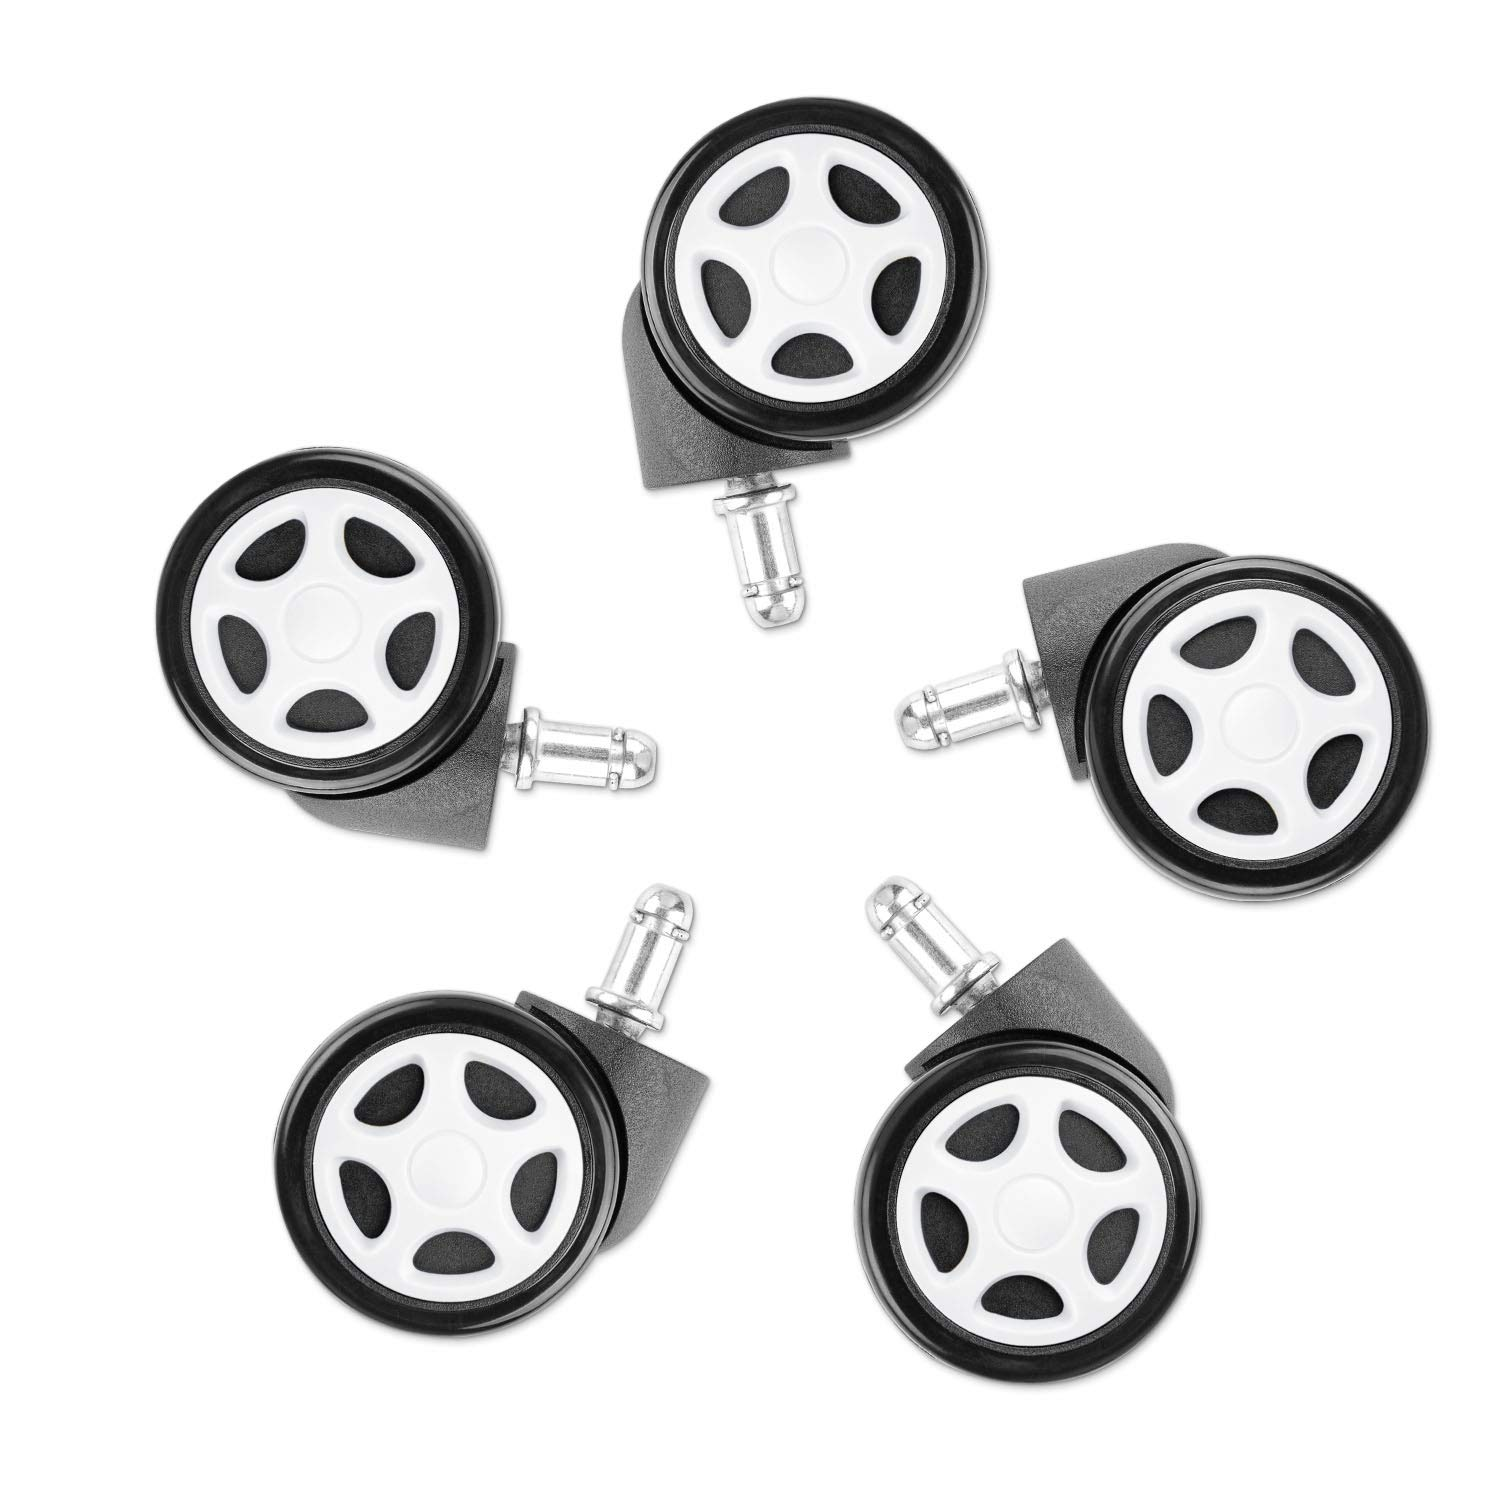 Devoko Premium Office Chair Wheels Suiting All Types of Flooring Perfect Mute Gaming Chair Caster Wheels Heavy Duty Roller Easy to Install Set of 5 Black